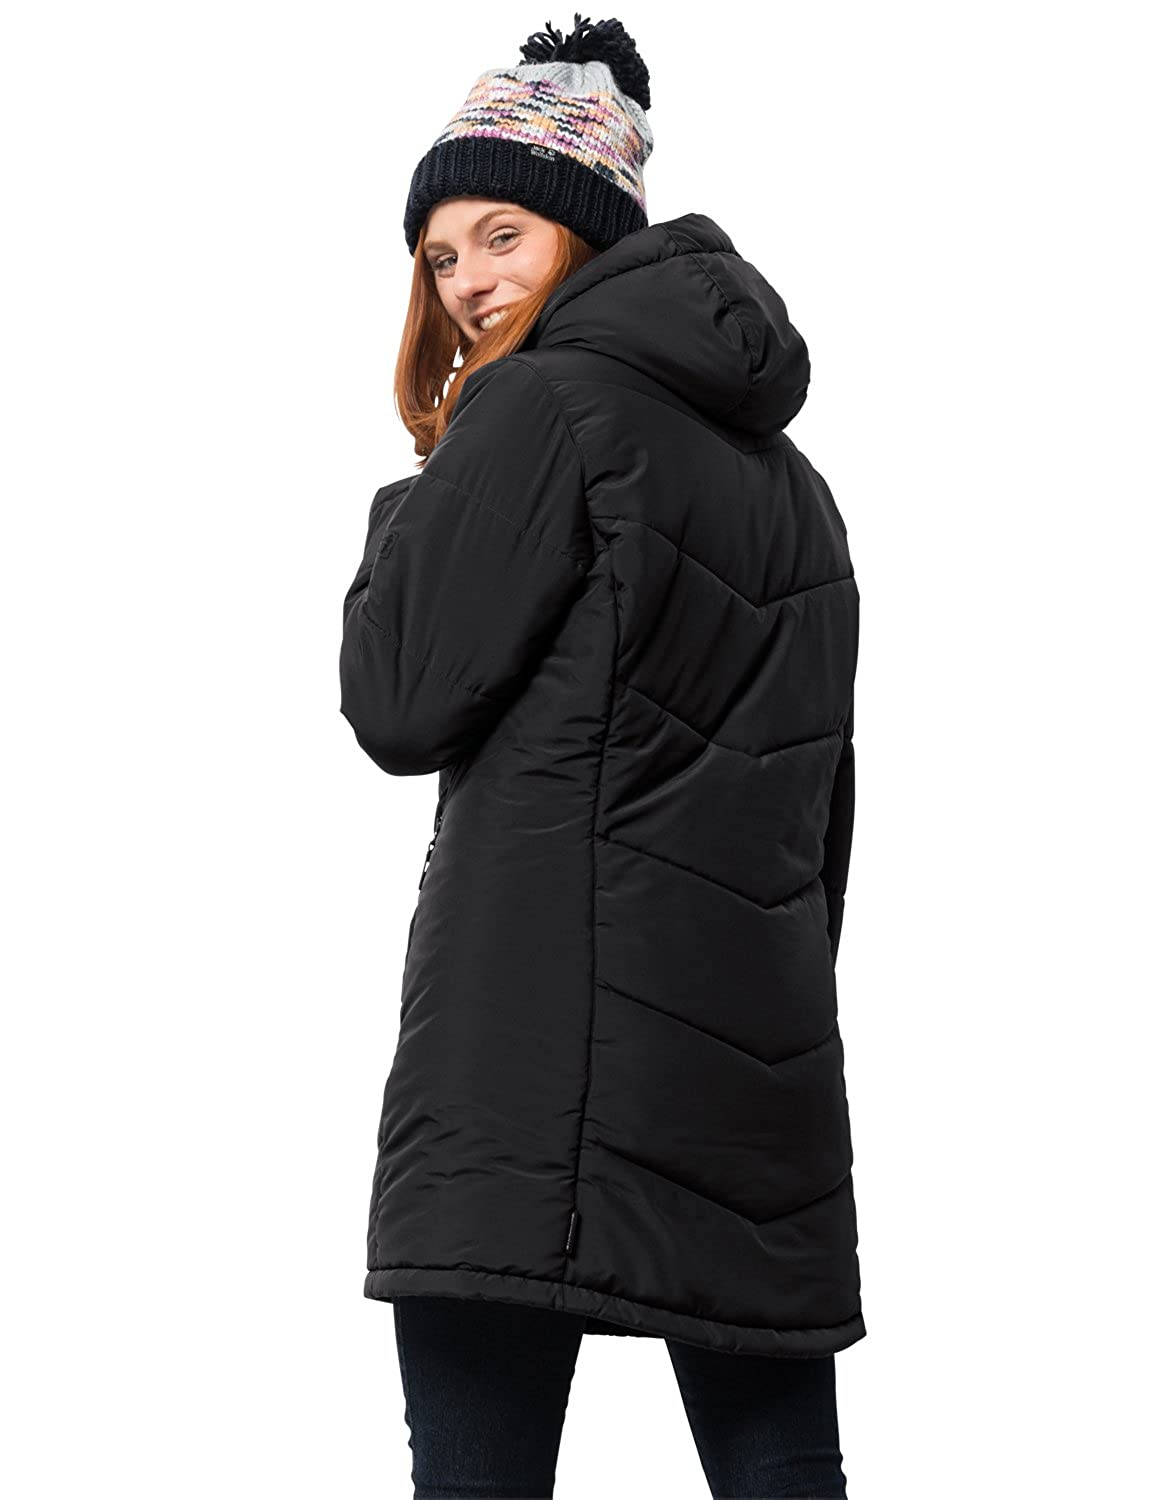 cd176328780 Amazon.com: Jack Wolfskin Women's Svalbard Insulated Long Jacket: Clothing